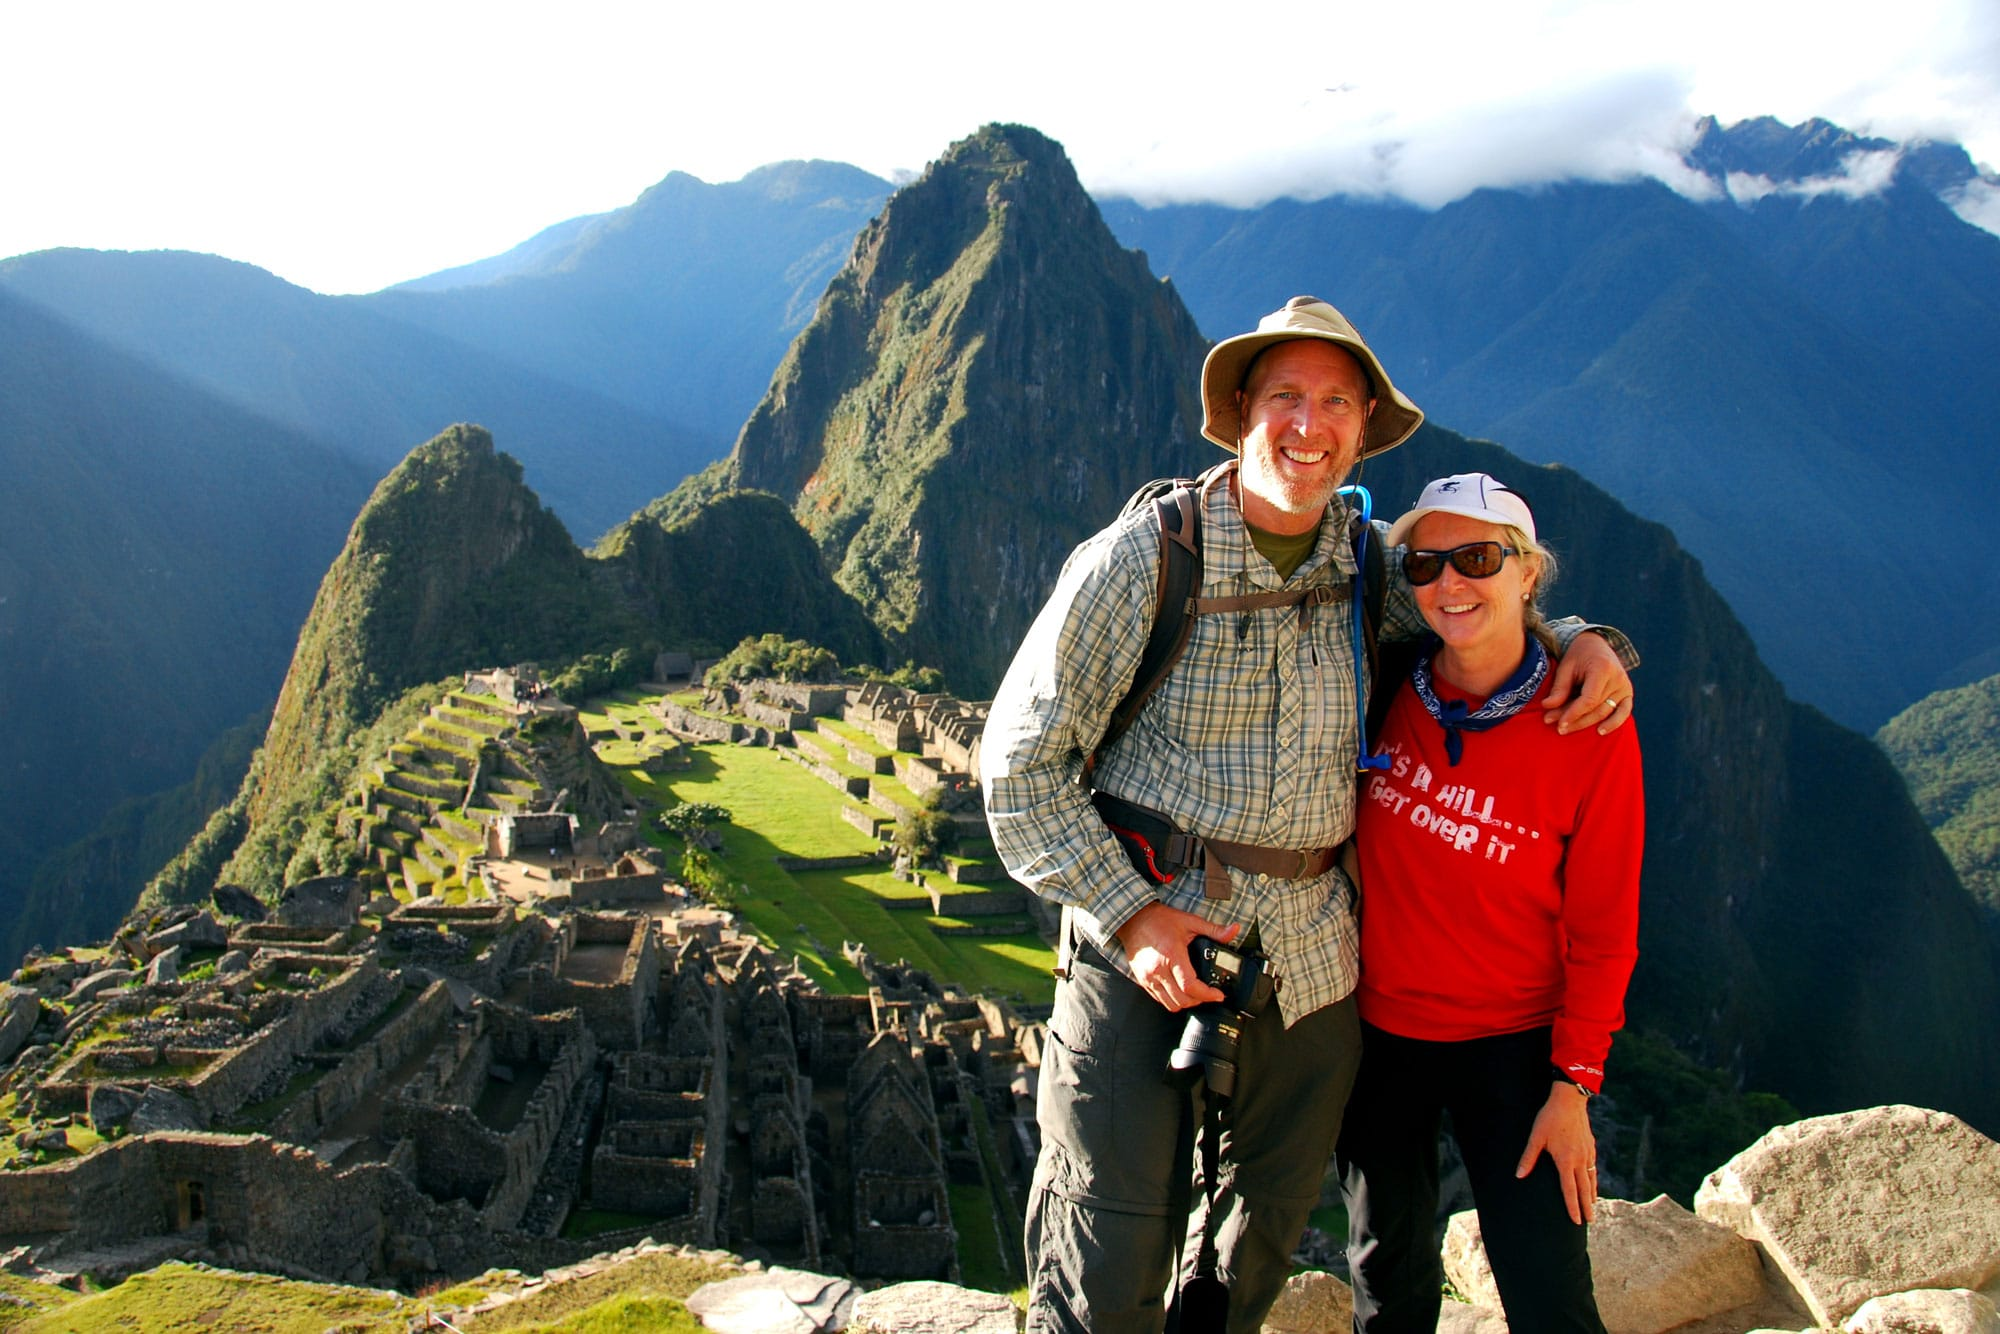 June 2013 — Our most extreme hike to date; after five days and 30+ miles of some tough hiking in the High Andes of Peru, we made it to Machu Picchu!